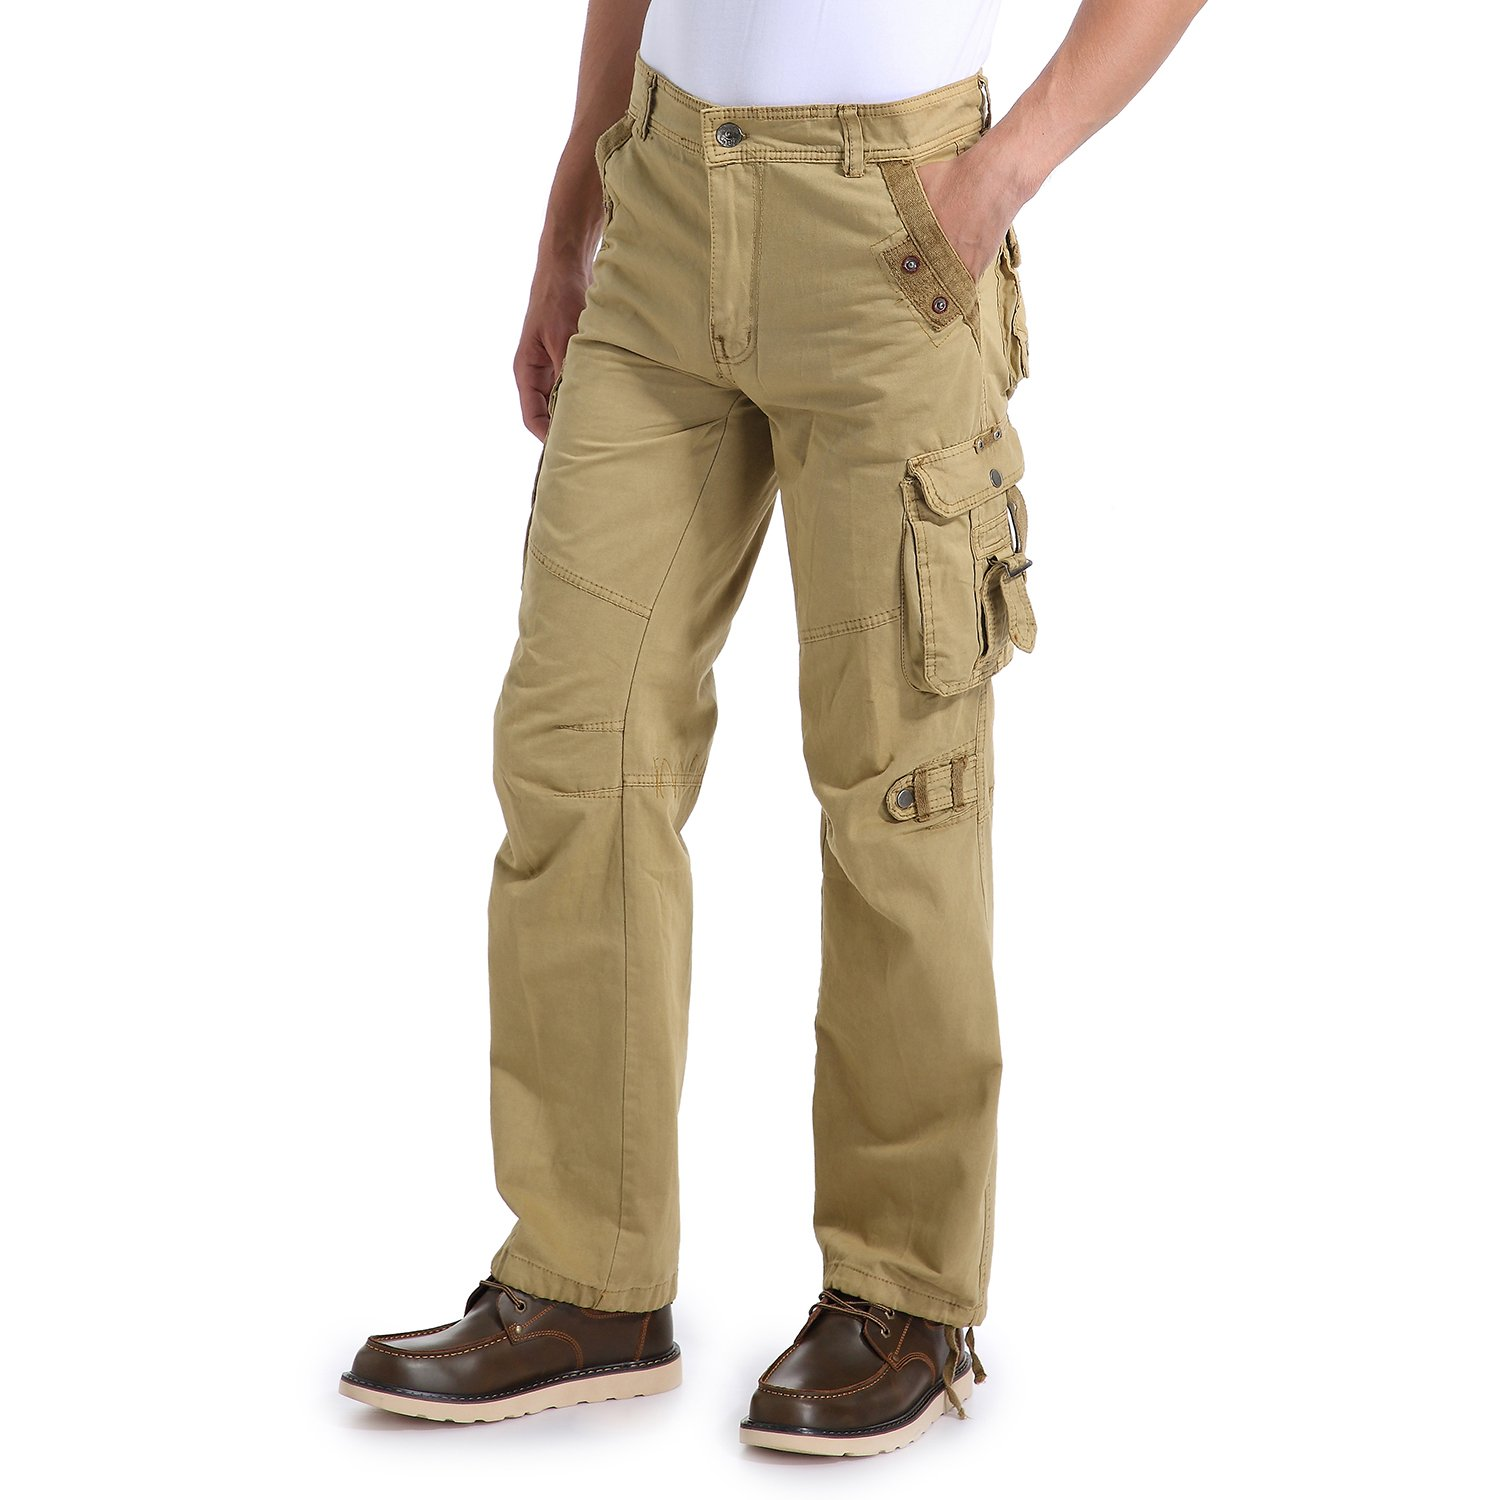 Eaglide Mens Regular-Fit Outdoor Tactical Pant,Men's Multi-Function Pockets Cotton Casual Cargo Pants